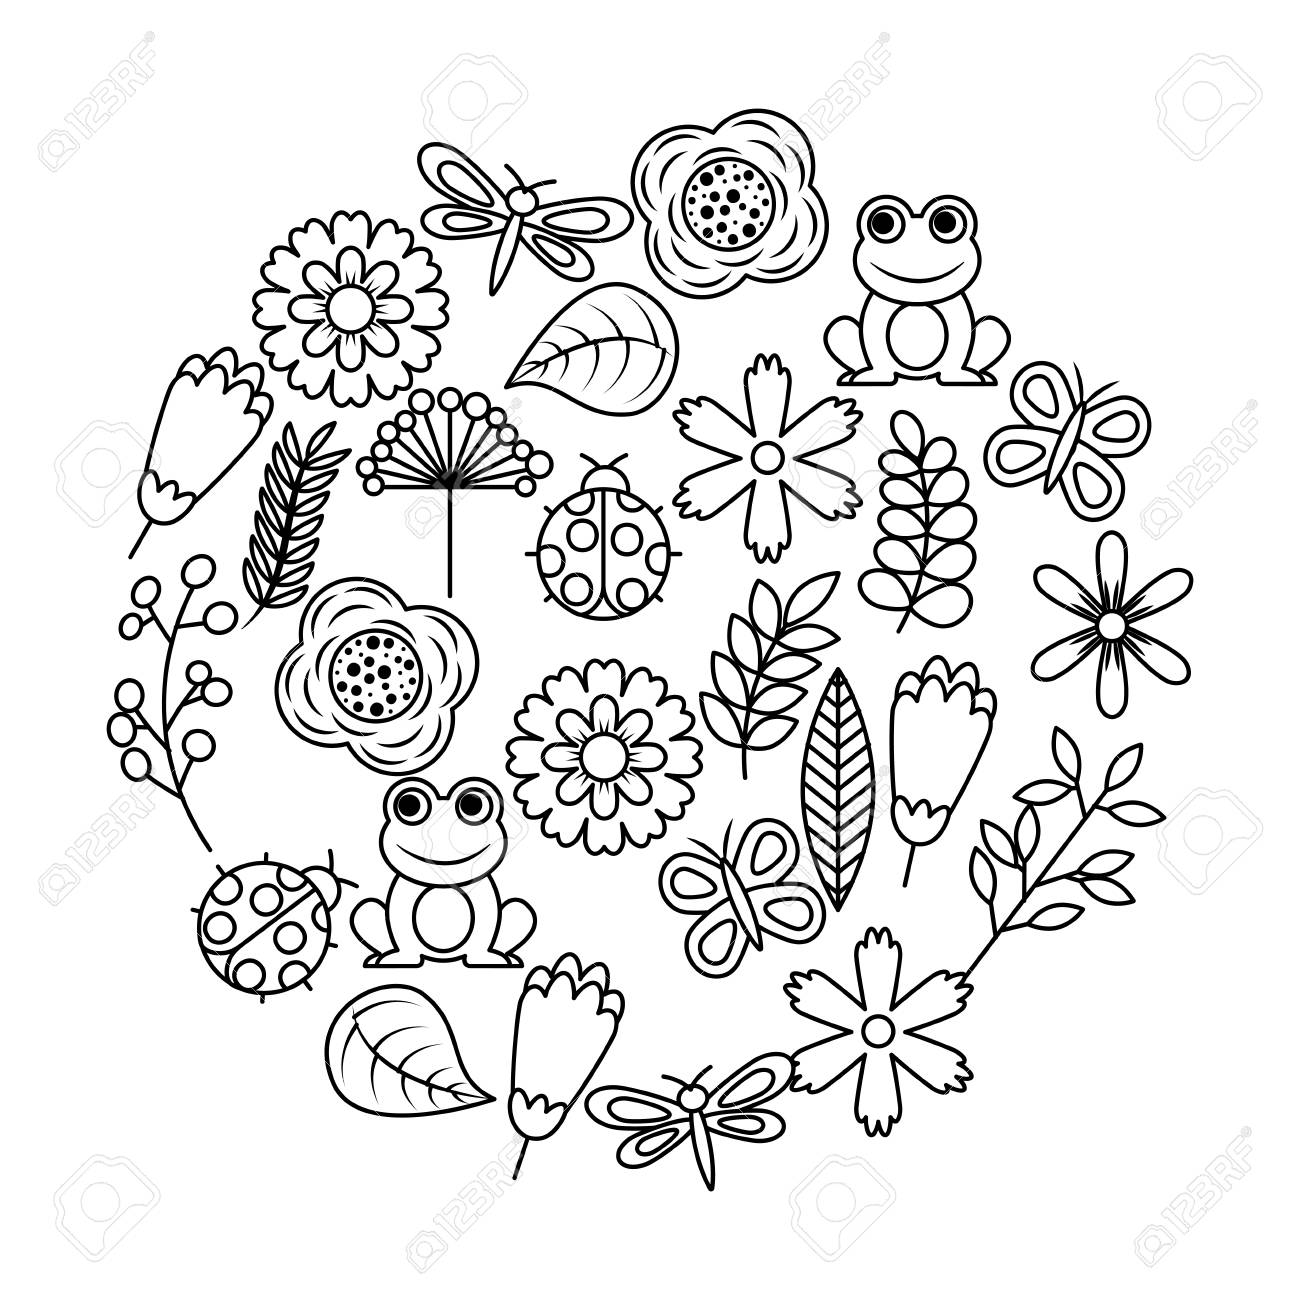 Outline images of flowers and butterflies